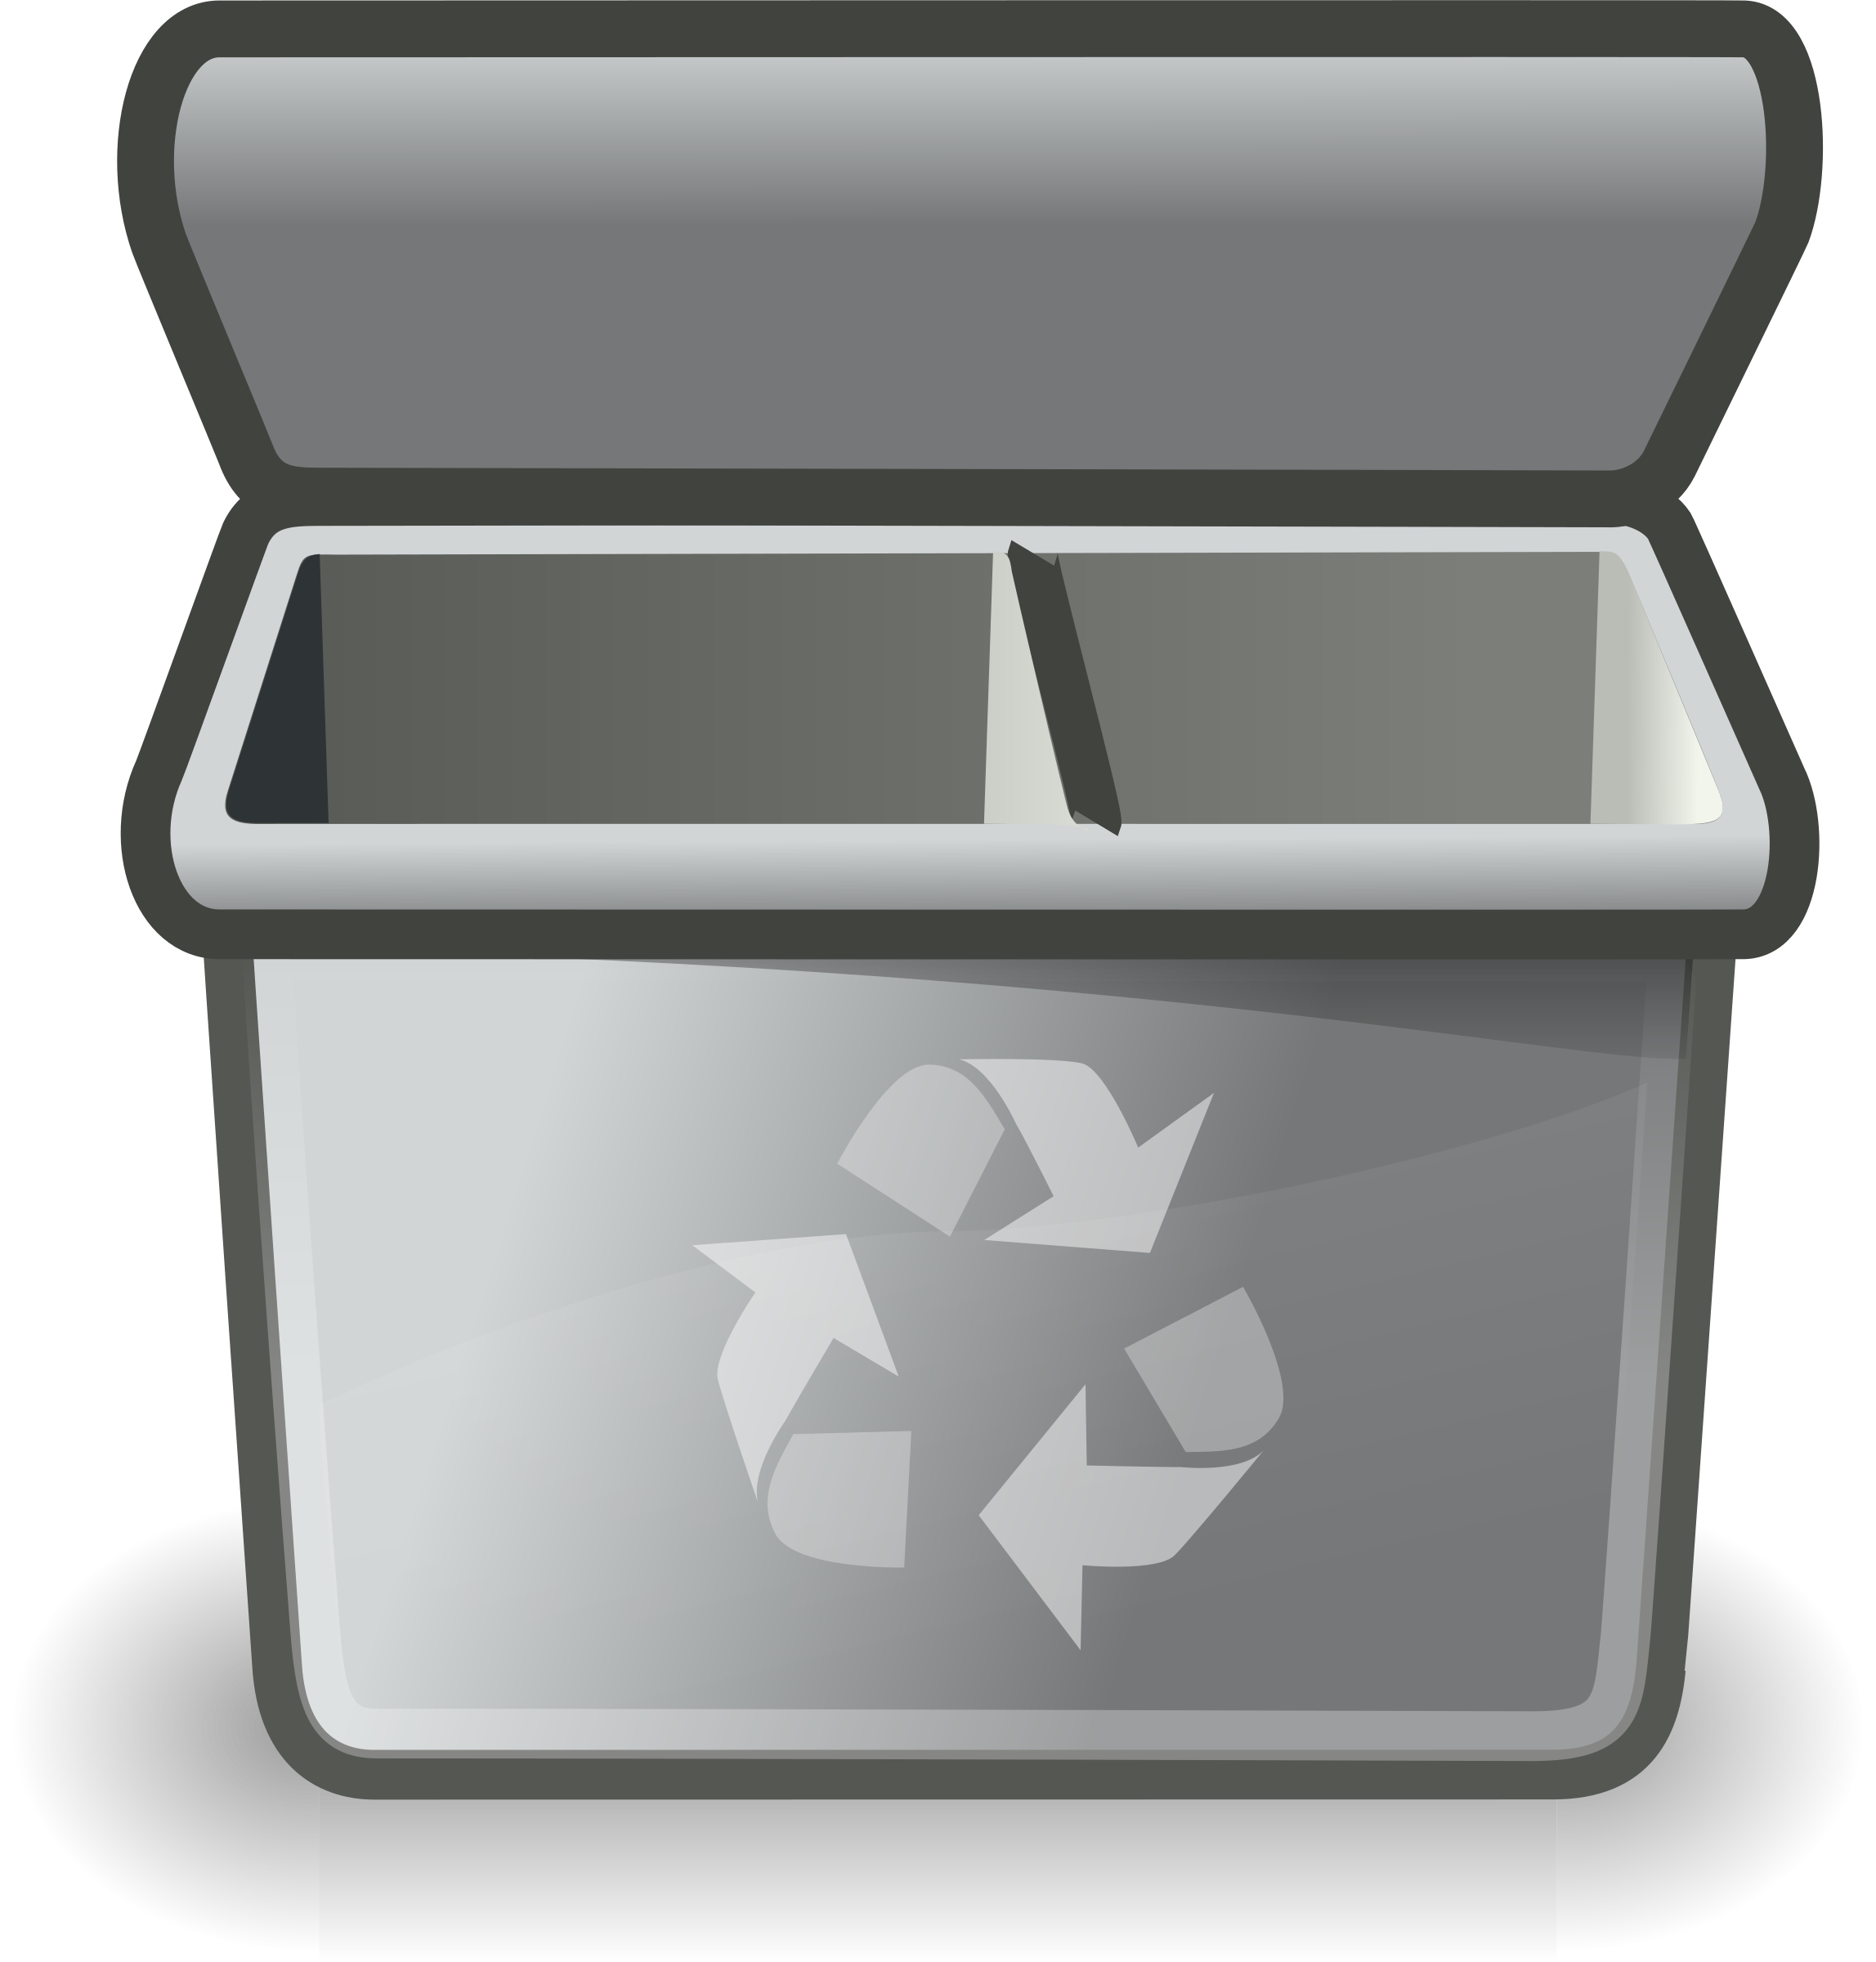 Clipart - Gray recycle bin